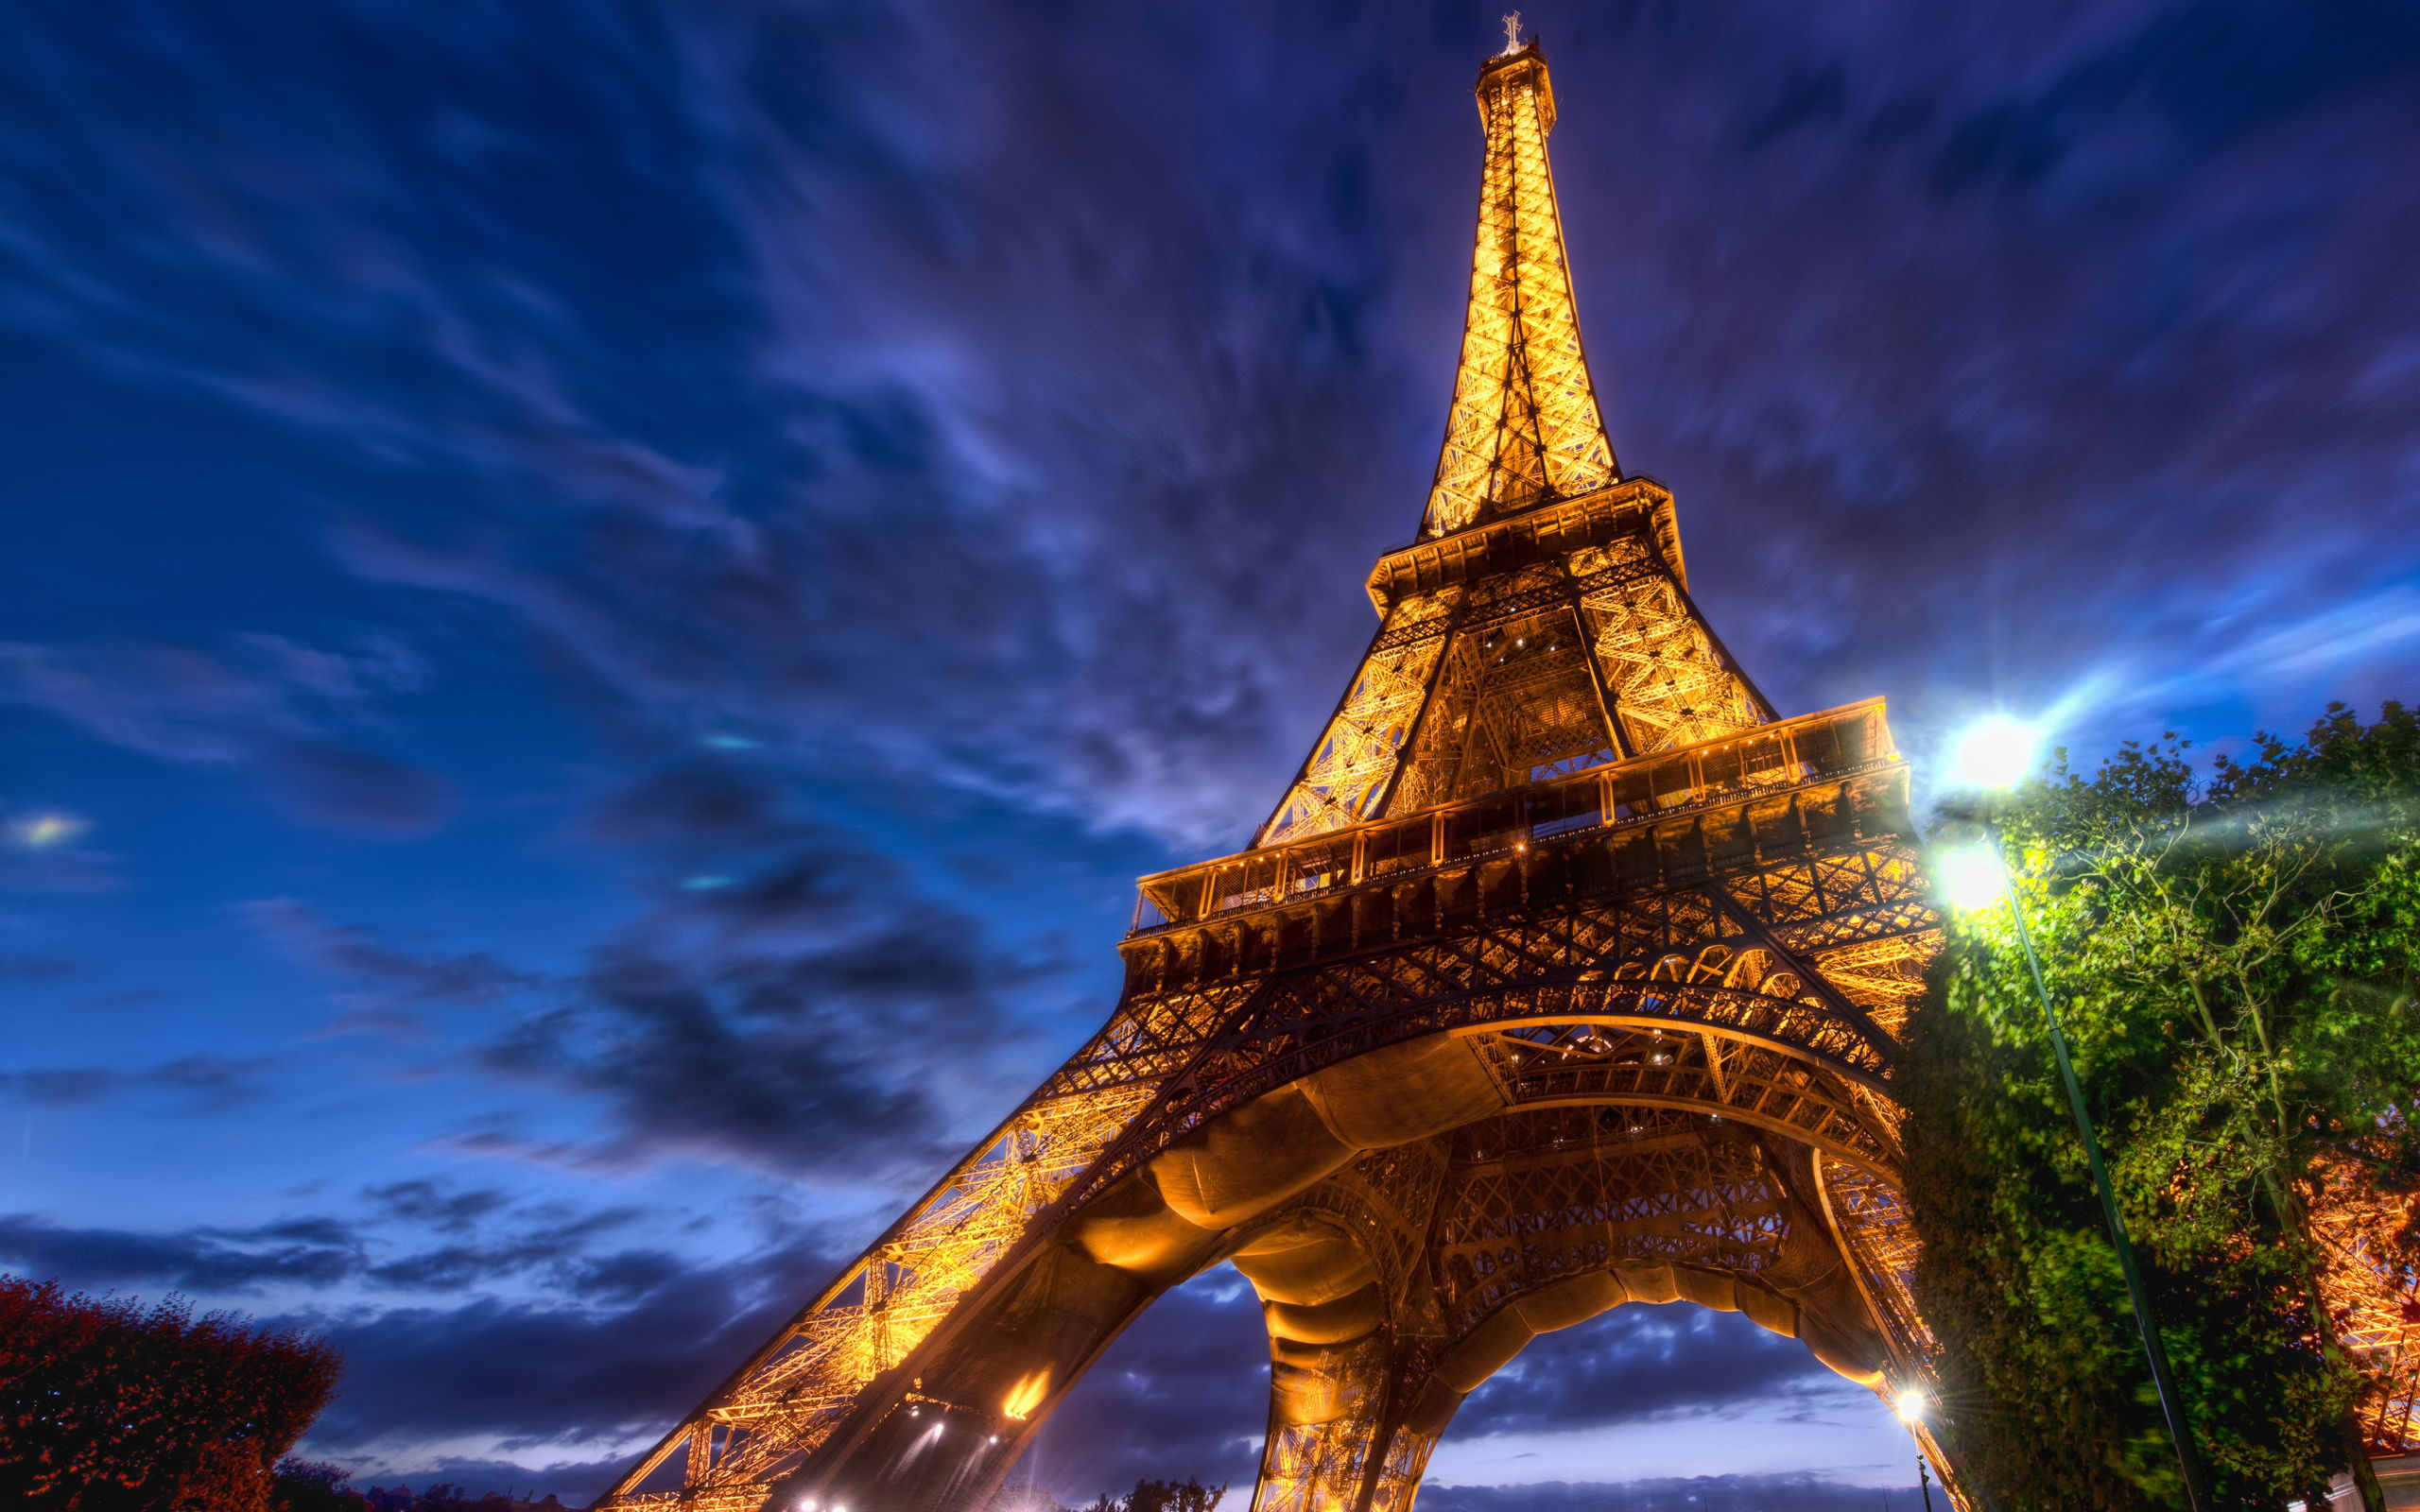 d fabulous image of eiffel tower